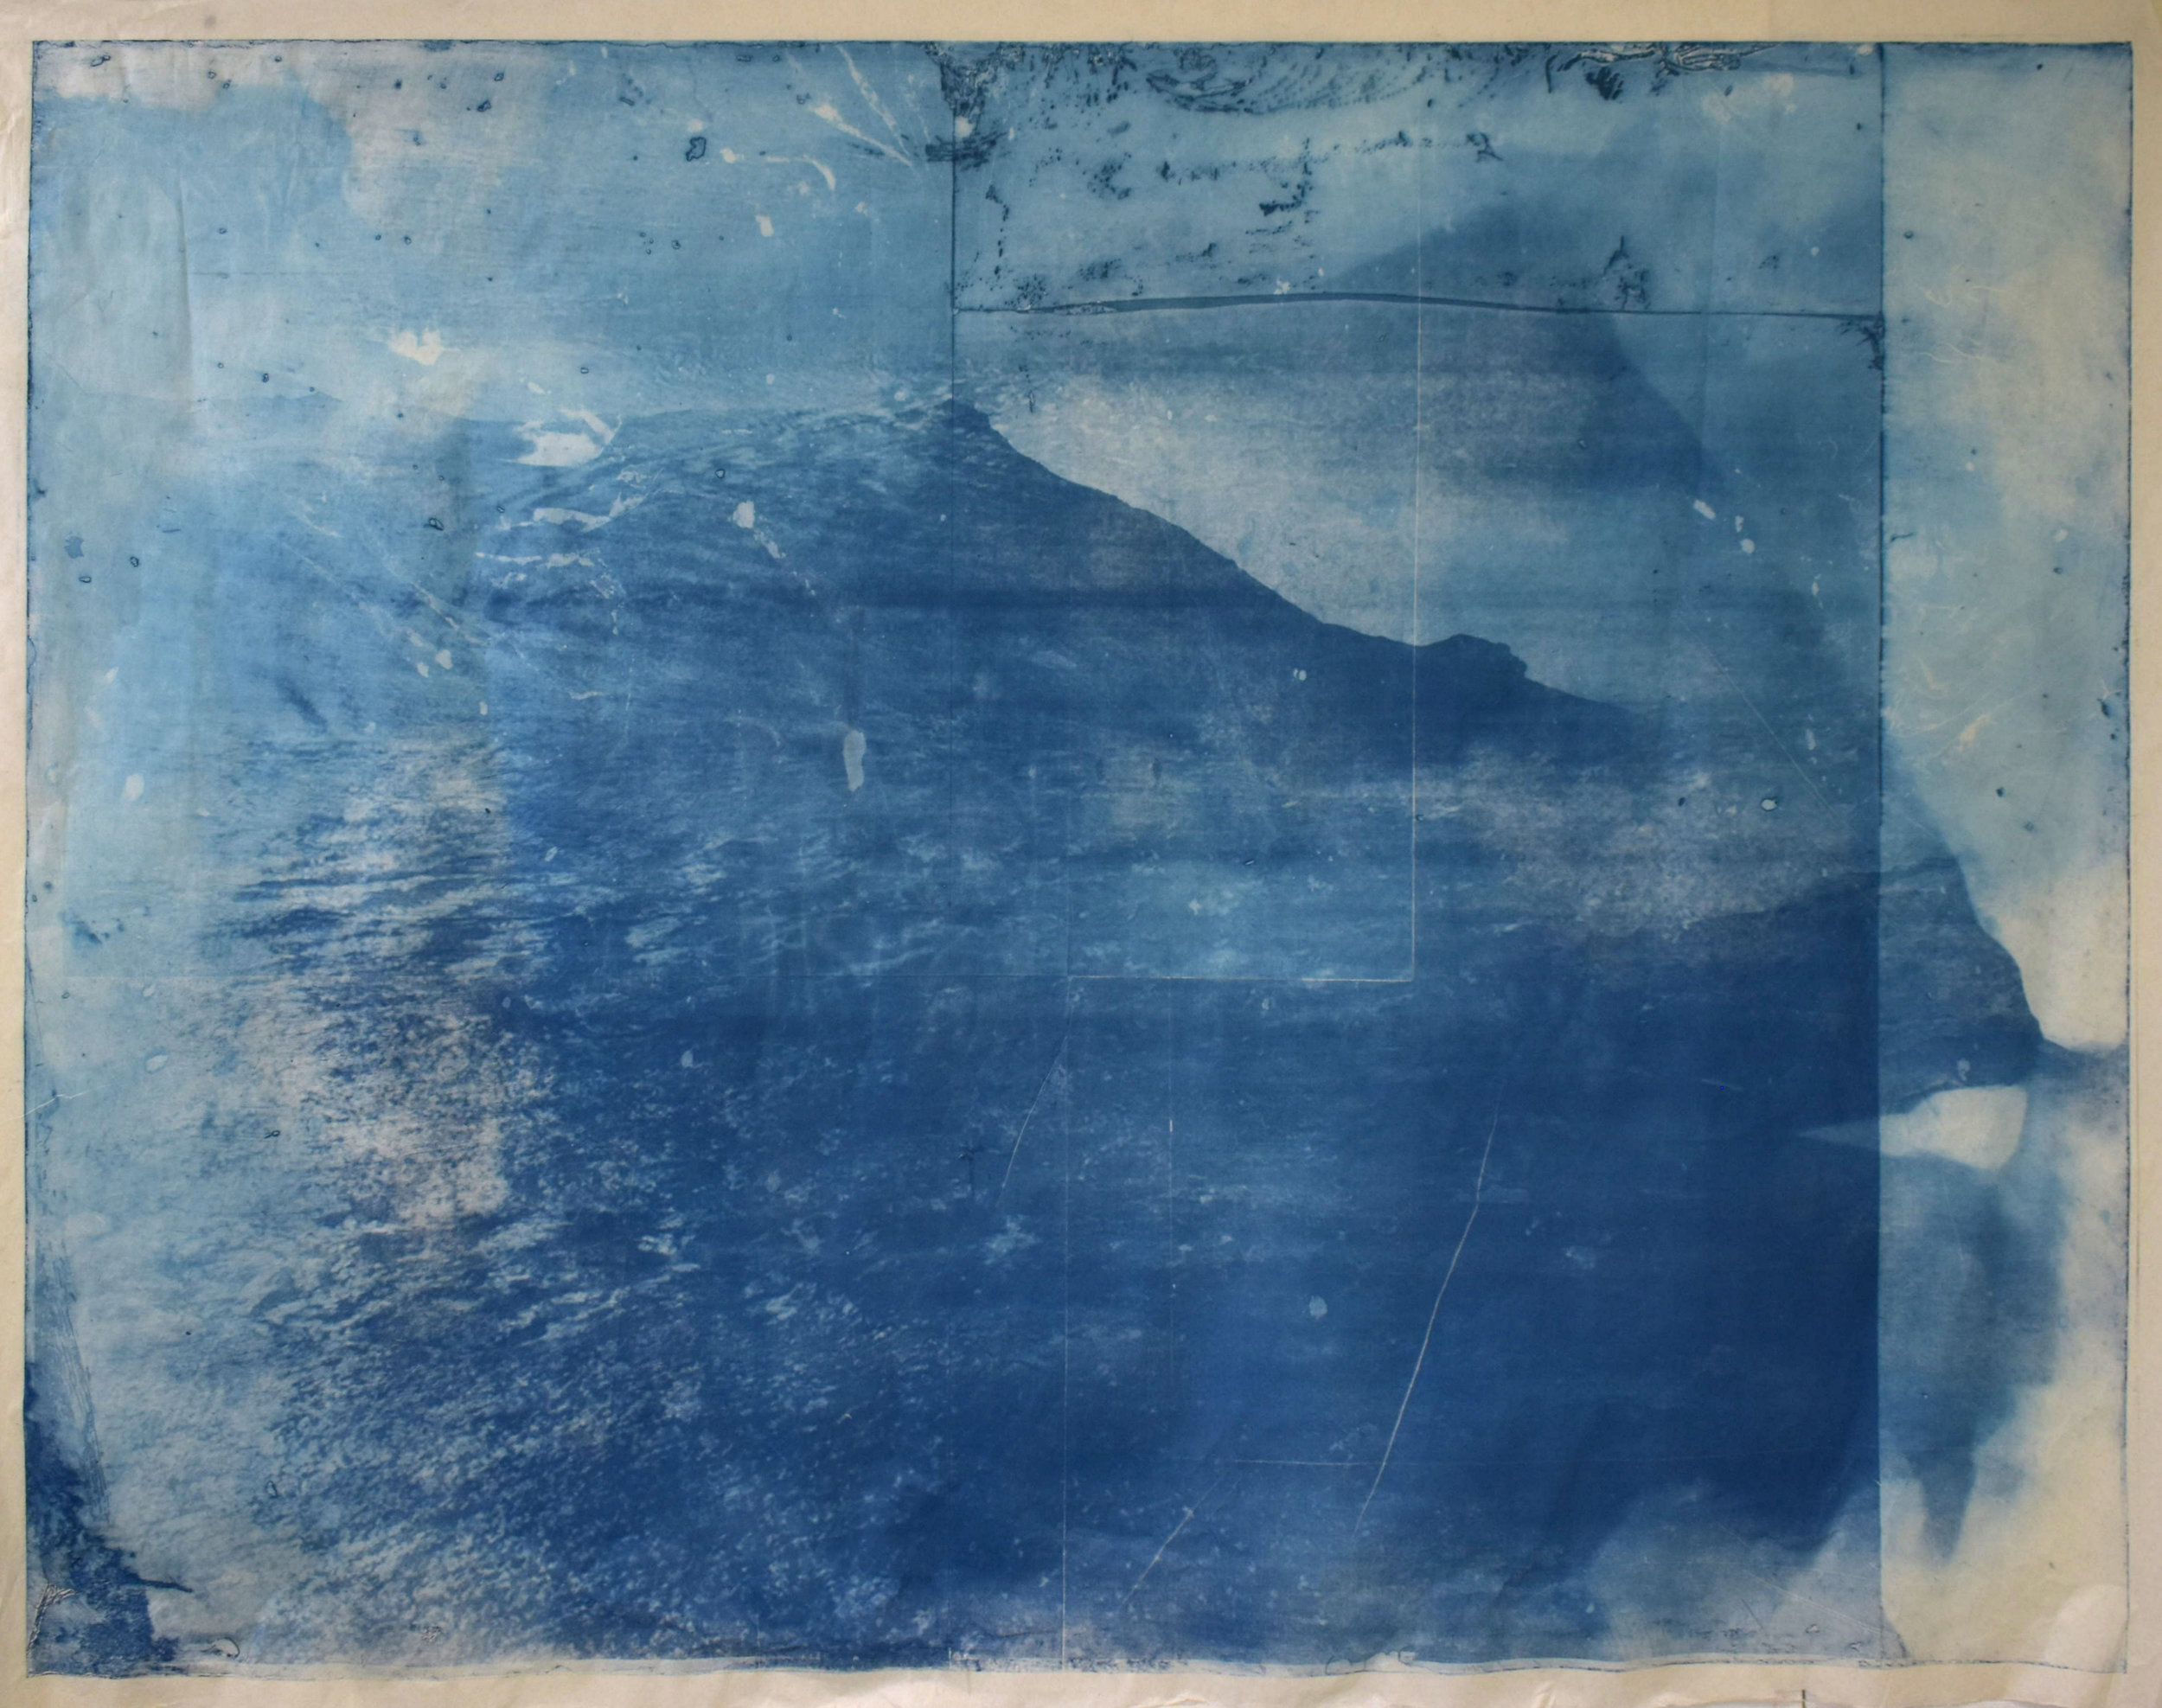 Over and Under (Whirlpool),  No. 5, 2019, series of 9 photopolymer prints (from Prussian blue to orange oxide) printed on semi-transparent Thai paper. 137 x 109cm. Superposition of 2 photographs taken by the artist: fumerole pits in Námafjall, Iceland and a whirlpool off the Cap Fréhel, France.